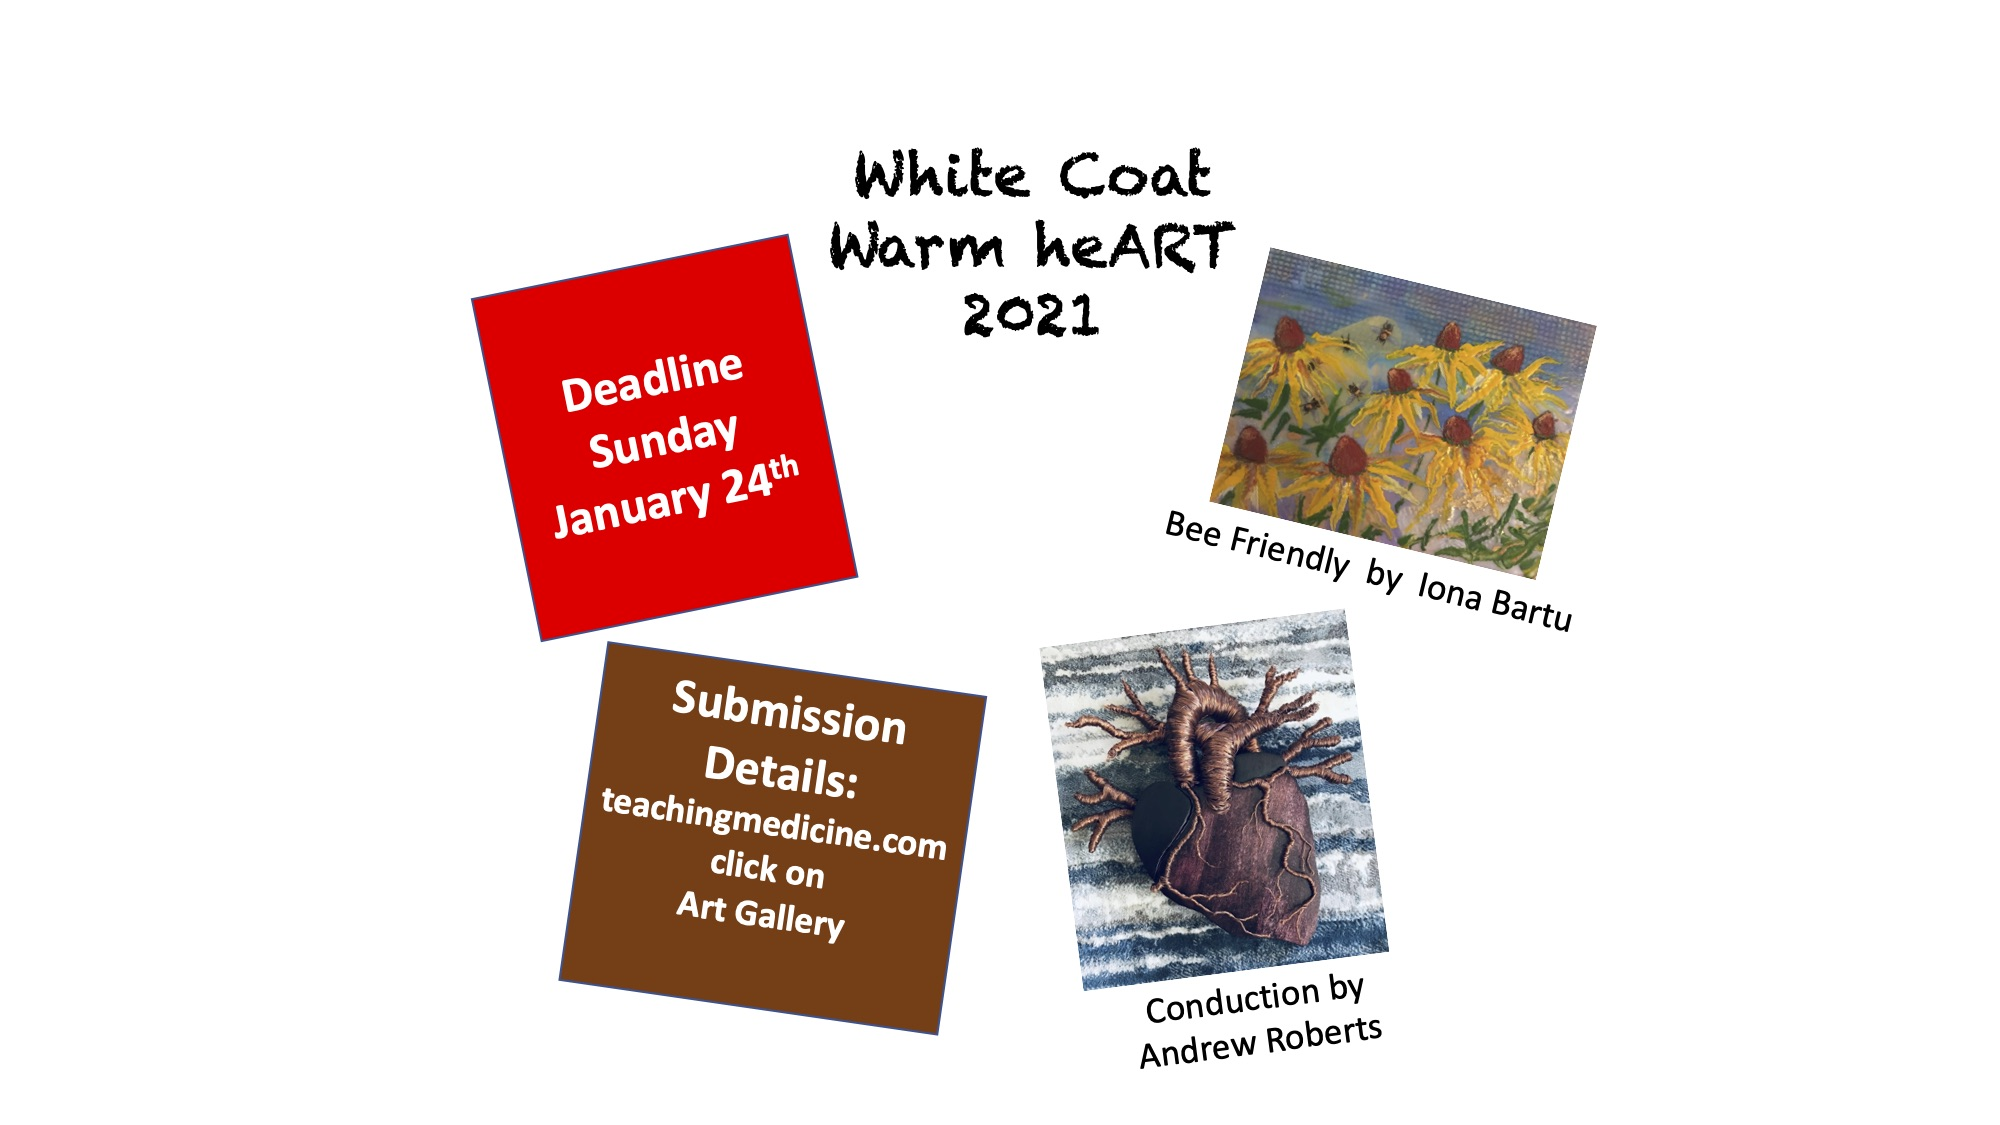 White Coat Warm heART 2021